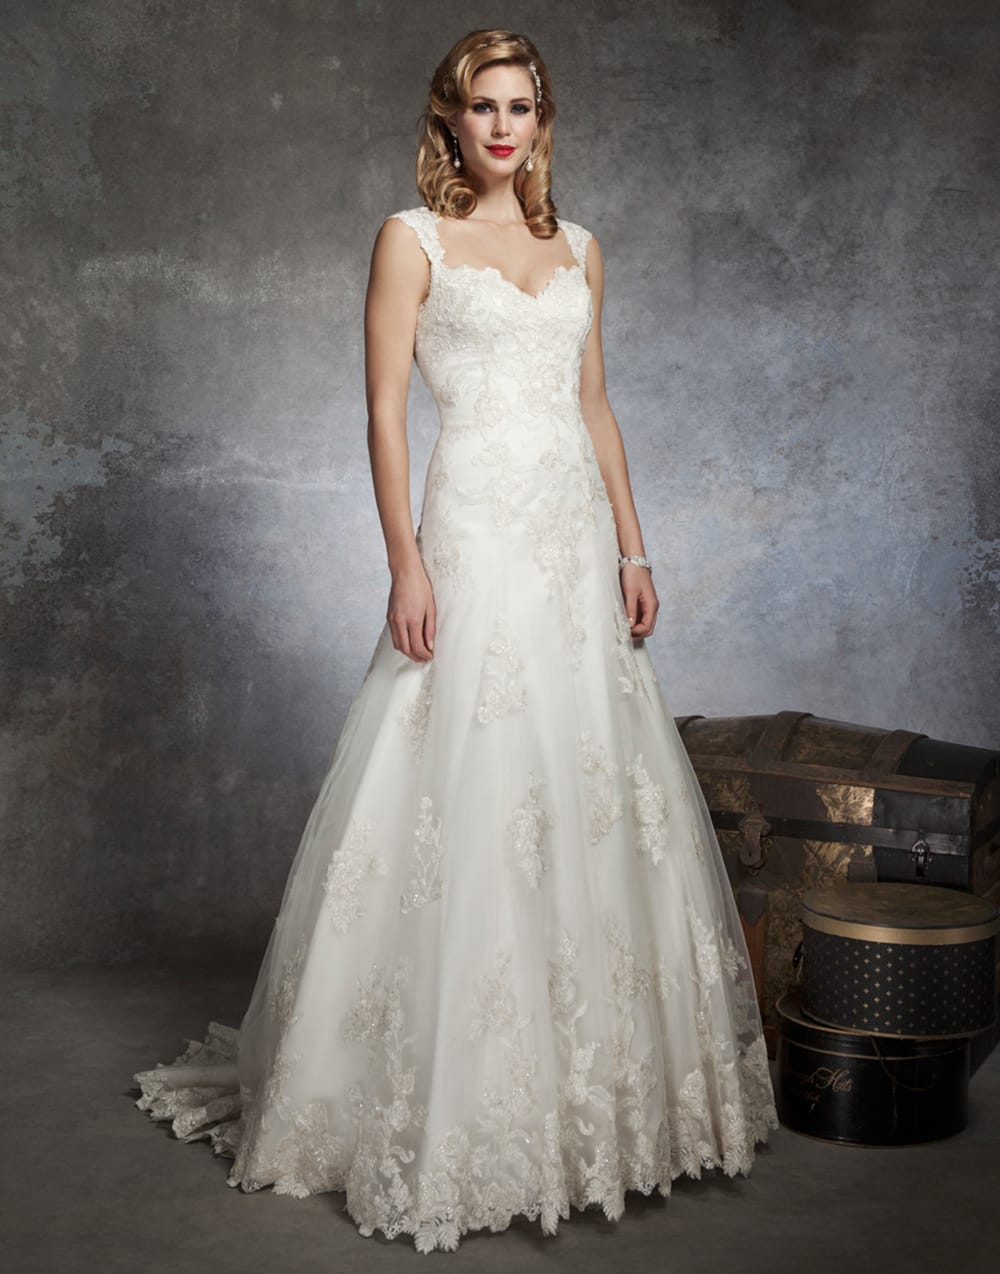 Justin alexander 8653 sell my wedding dress online for Sell wedding dress for free